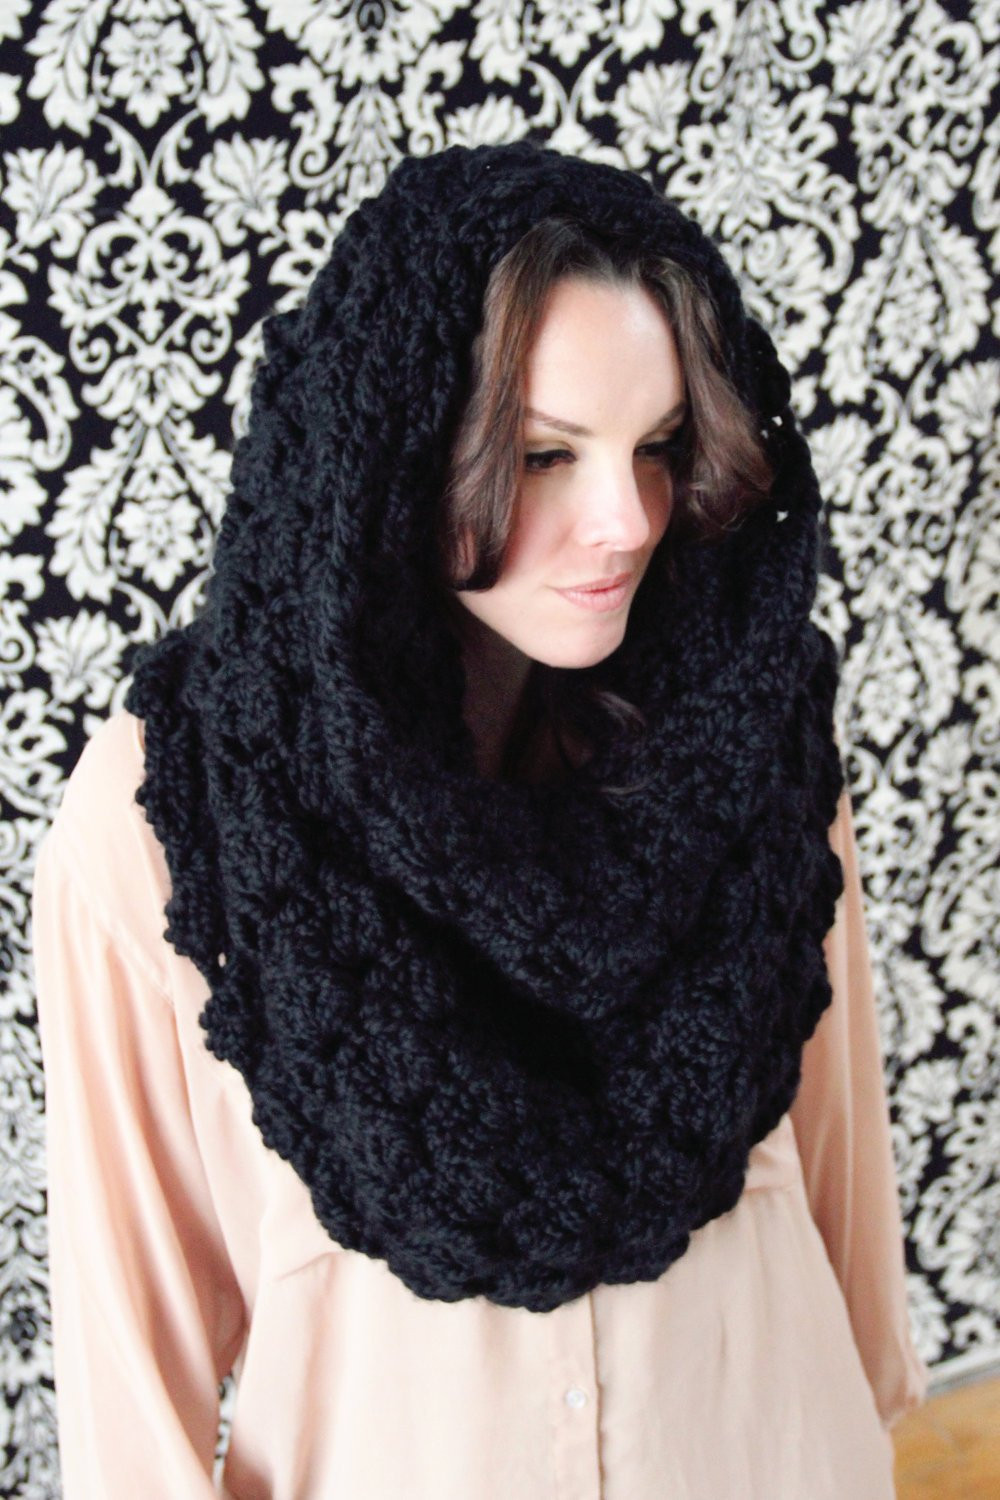 Inspirational Scarf Crochet Pattern Hooded Cowl Convertible Wrap Over Sized Crochet Cowl Scarf Pattern Of Superb 47 Pics Crochet Cowl Scarf Pattern